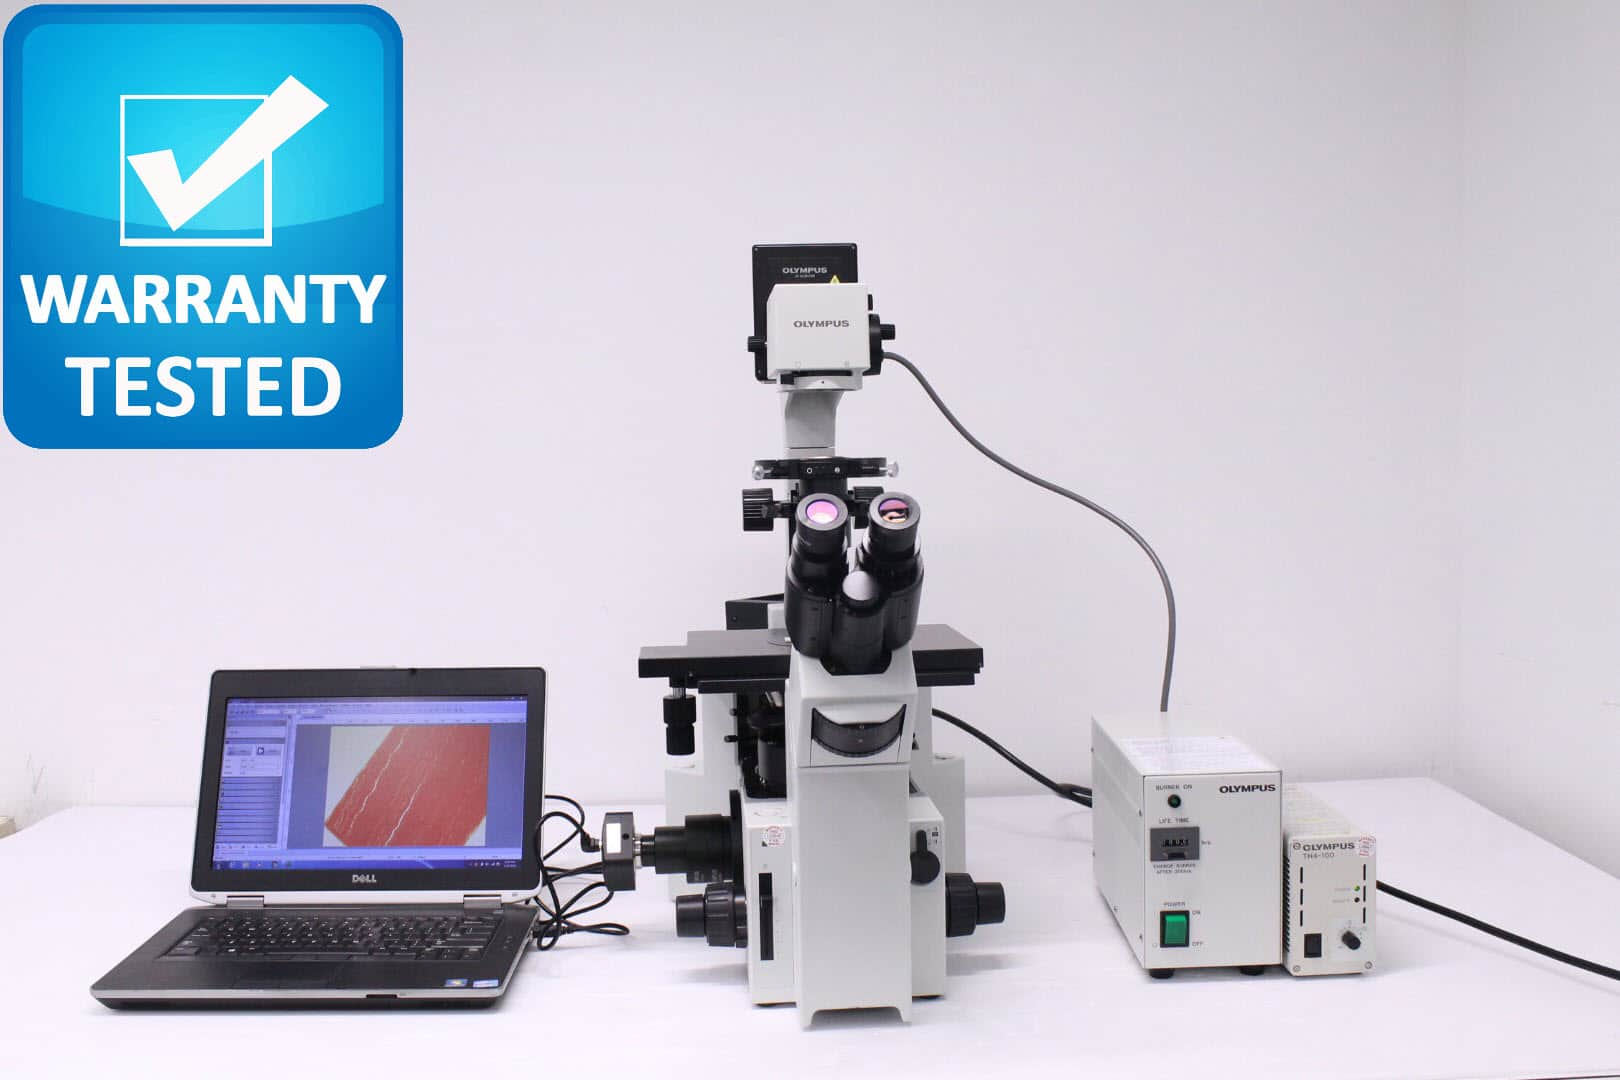 Olympus IX70 Inverted Fluorescence Phase Contrast Microscope